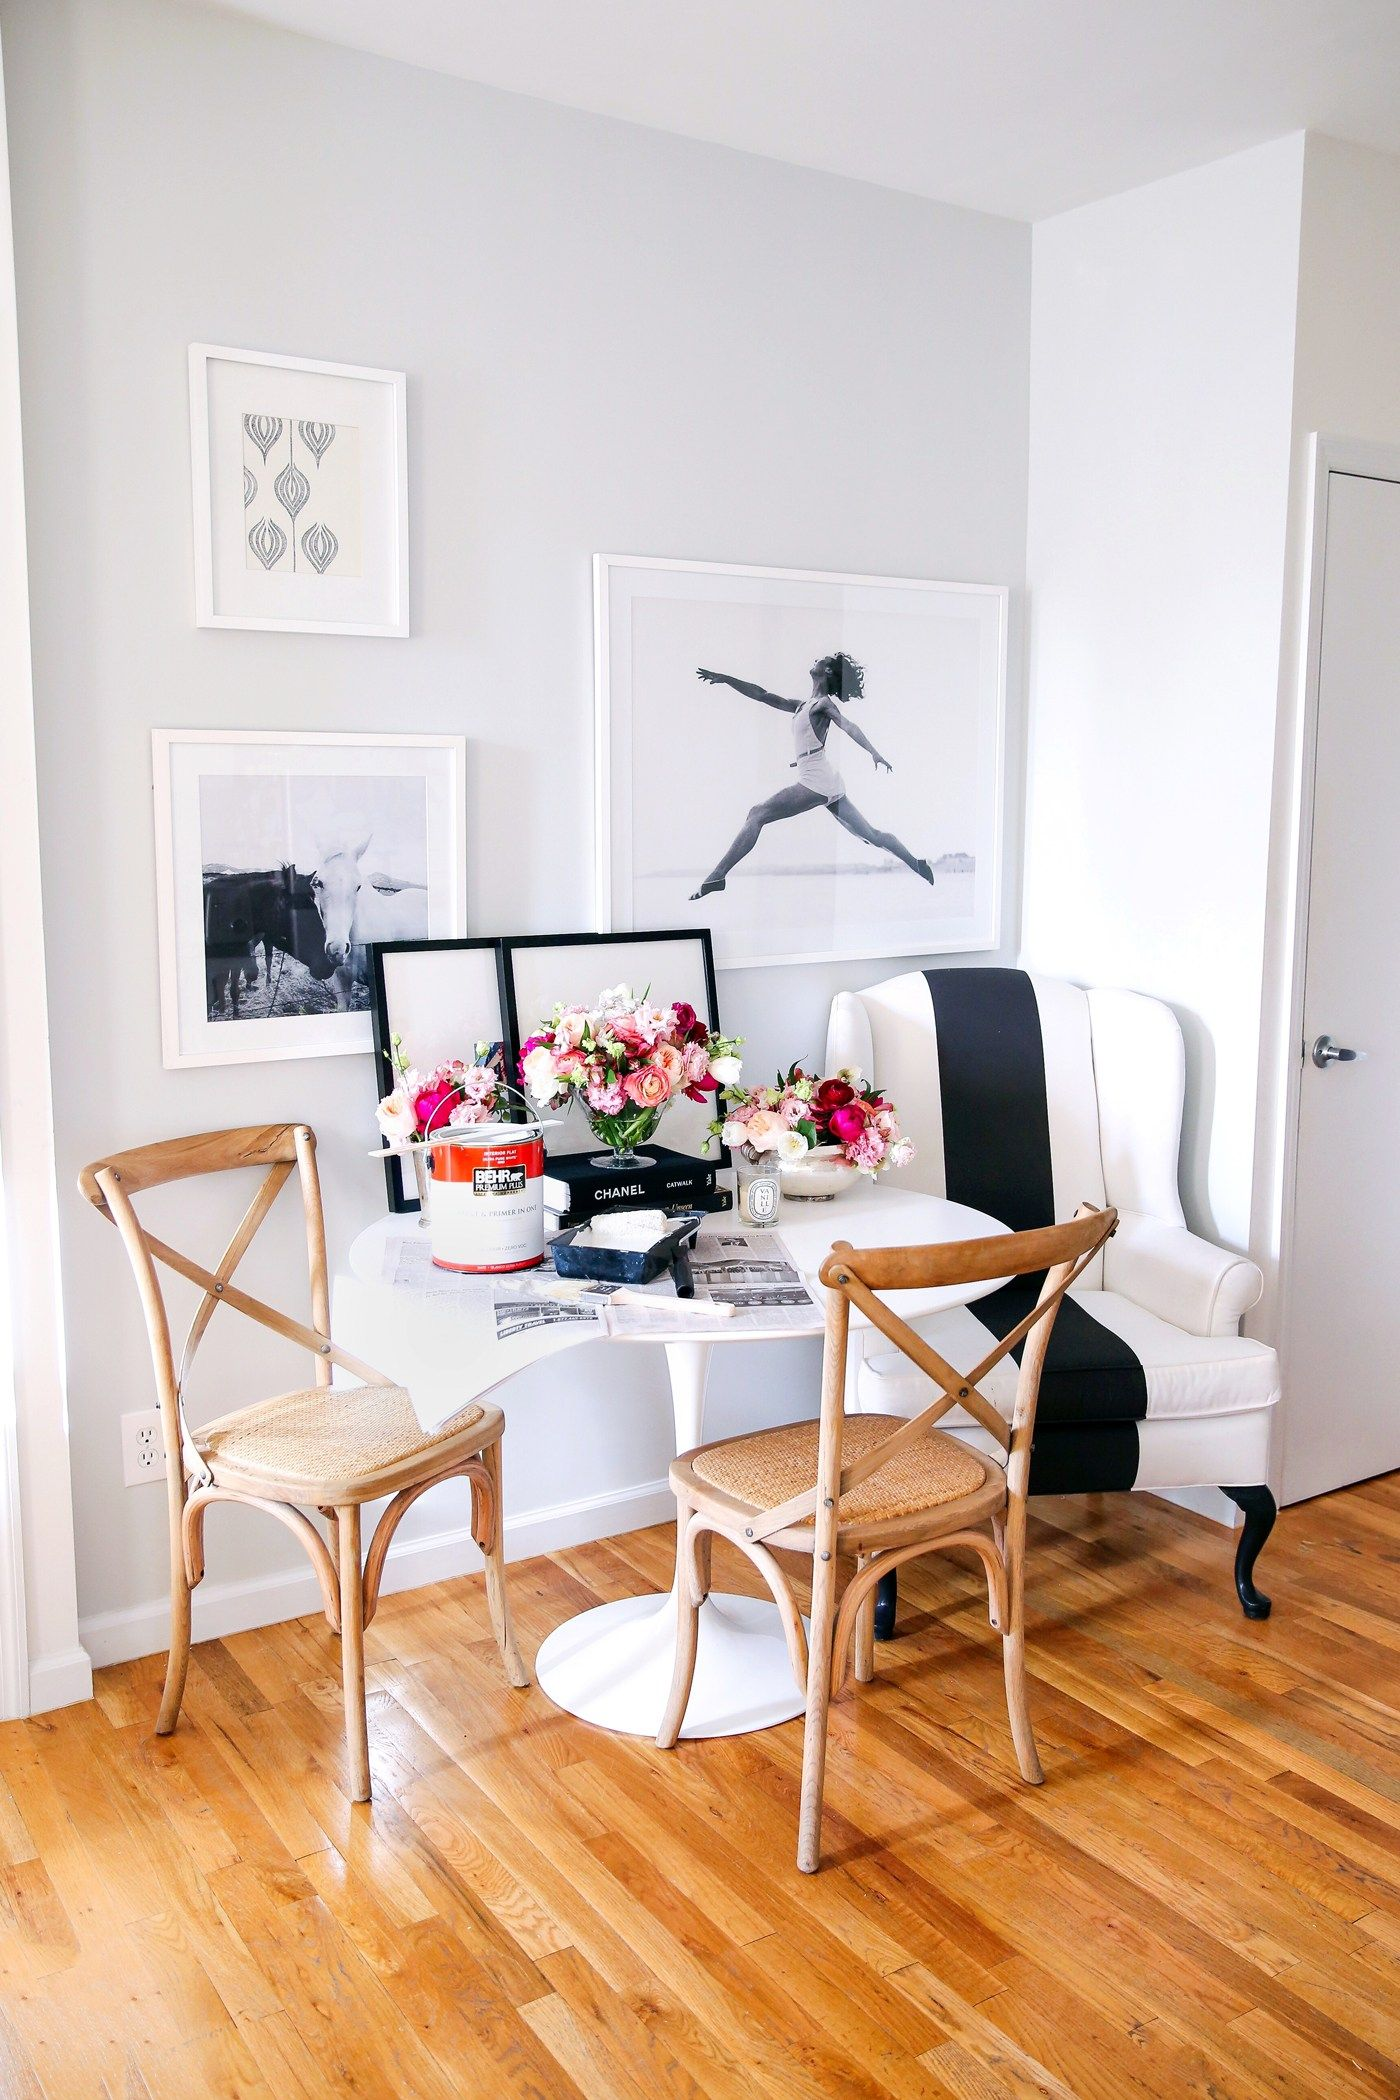 Kat @kattanita knew that she wanted to keep things feeling light and airy when picking out paint colors for her DIY dining nook makeover. She used a fresh coat of Close Knit to give her dining room a modern update with a simple, neutral color palette. Then, Kat used fresh flowers and tabletop accessories to provide small pops of color in her new space.